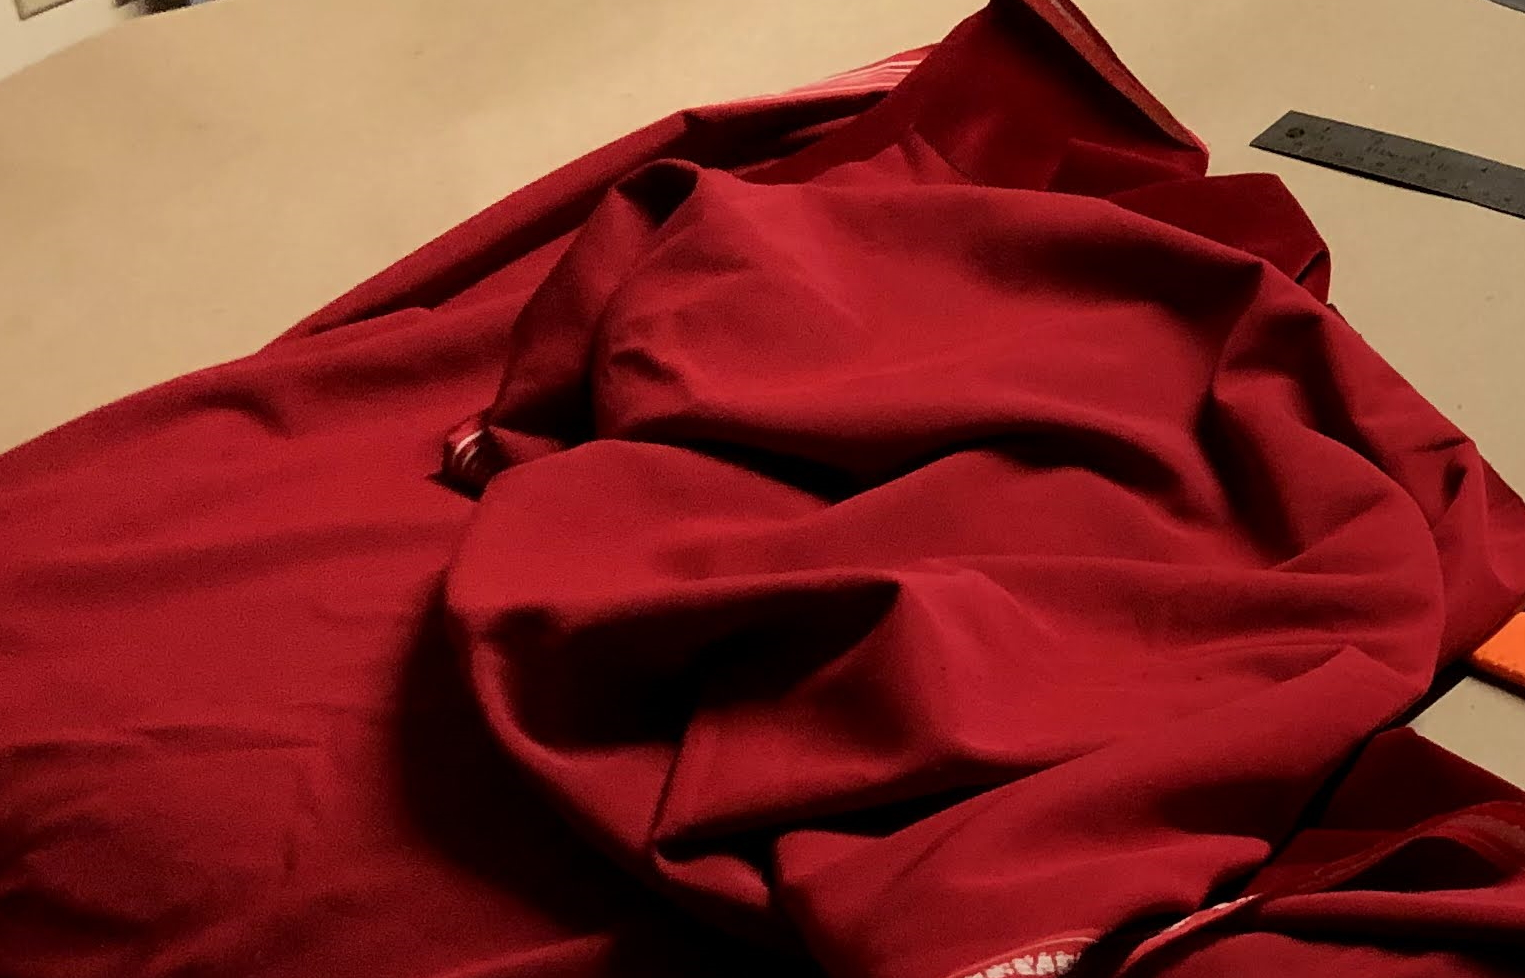 Deep red velvet used to line the bottom of the drawers